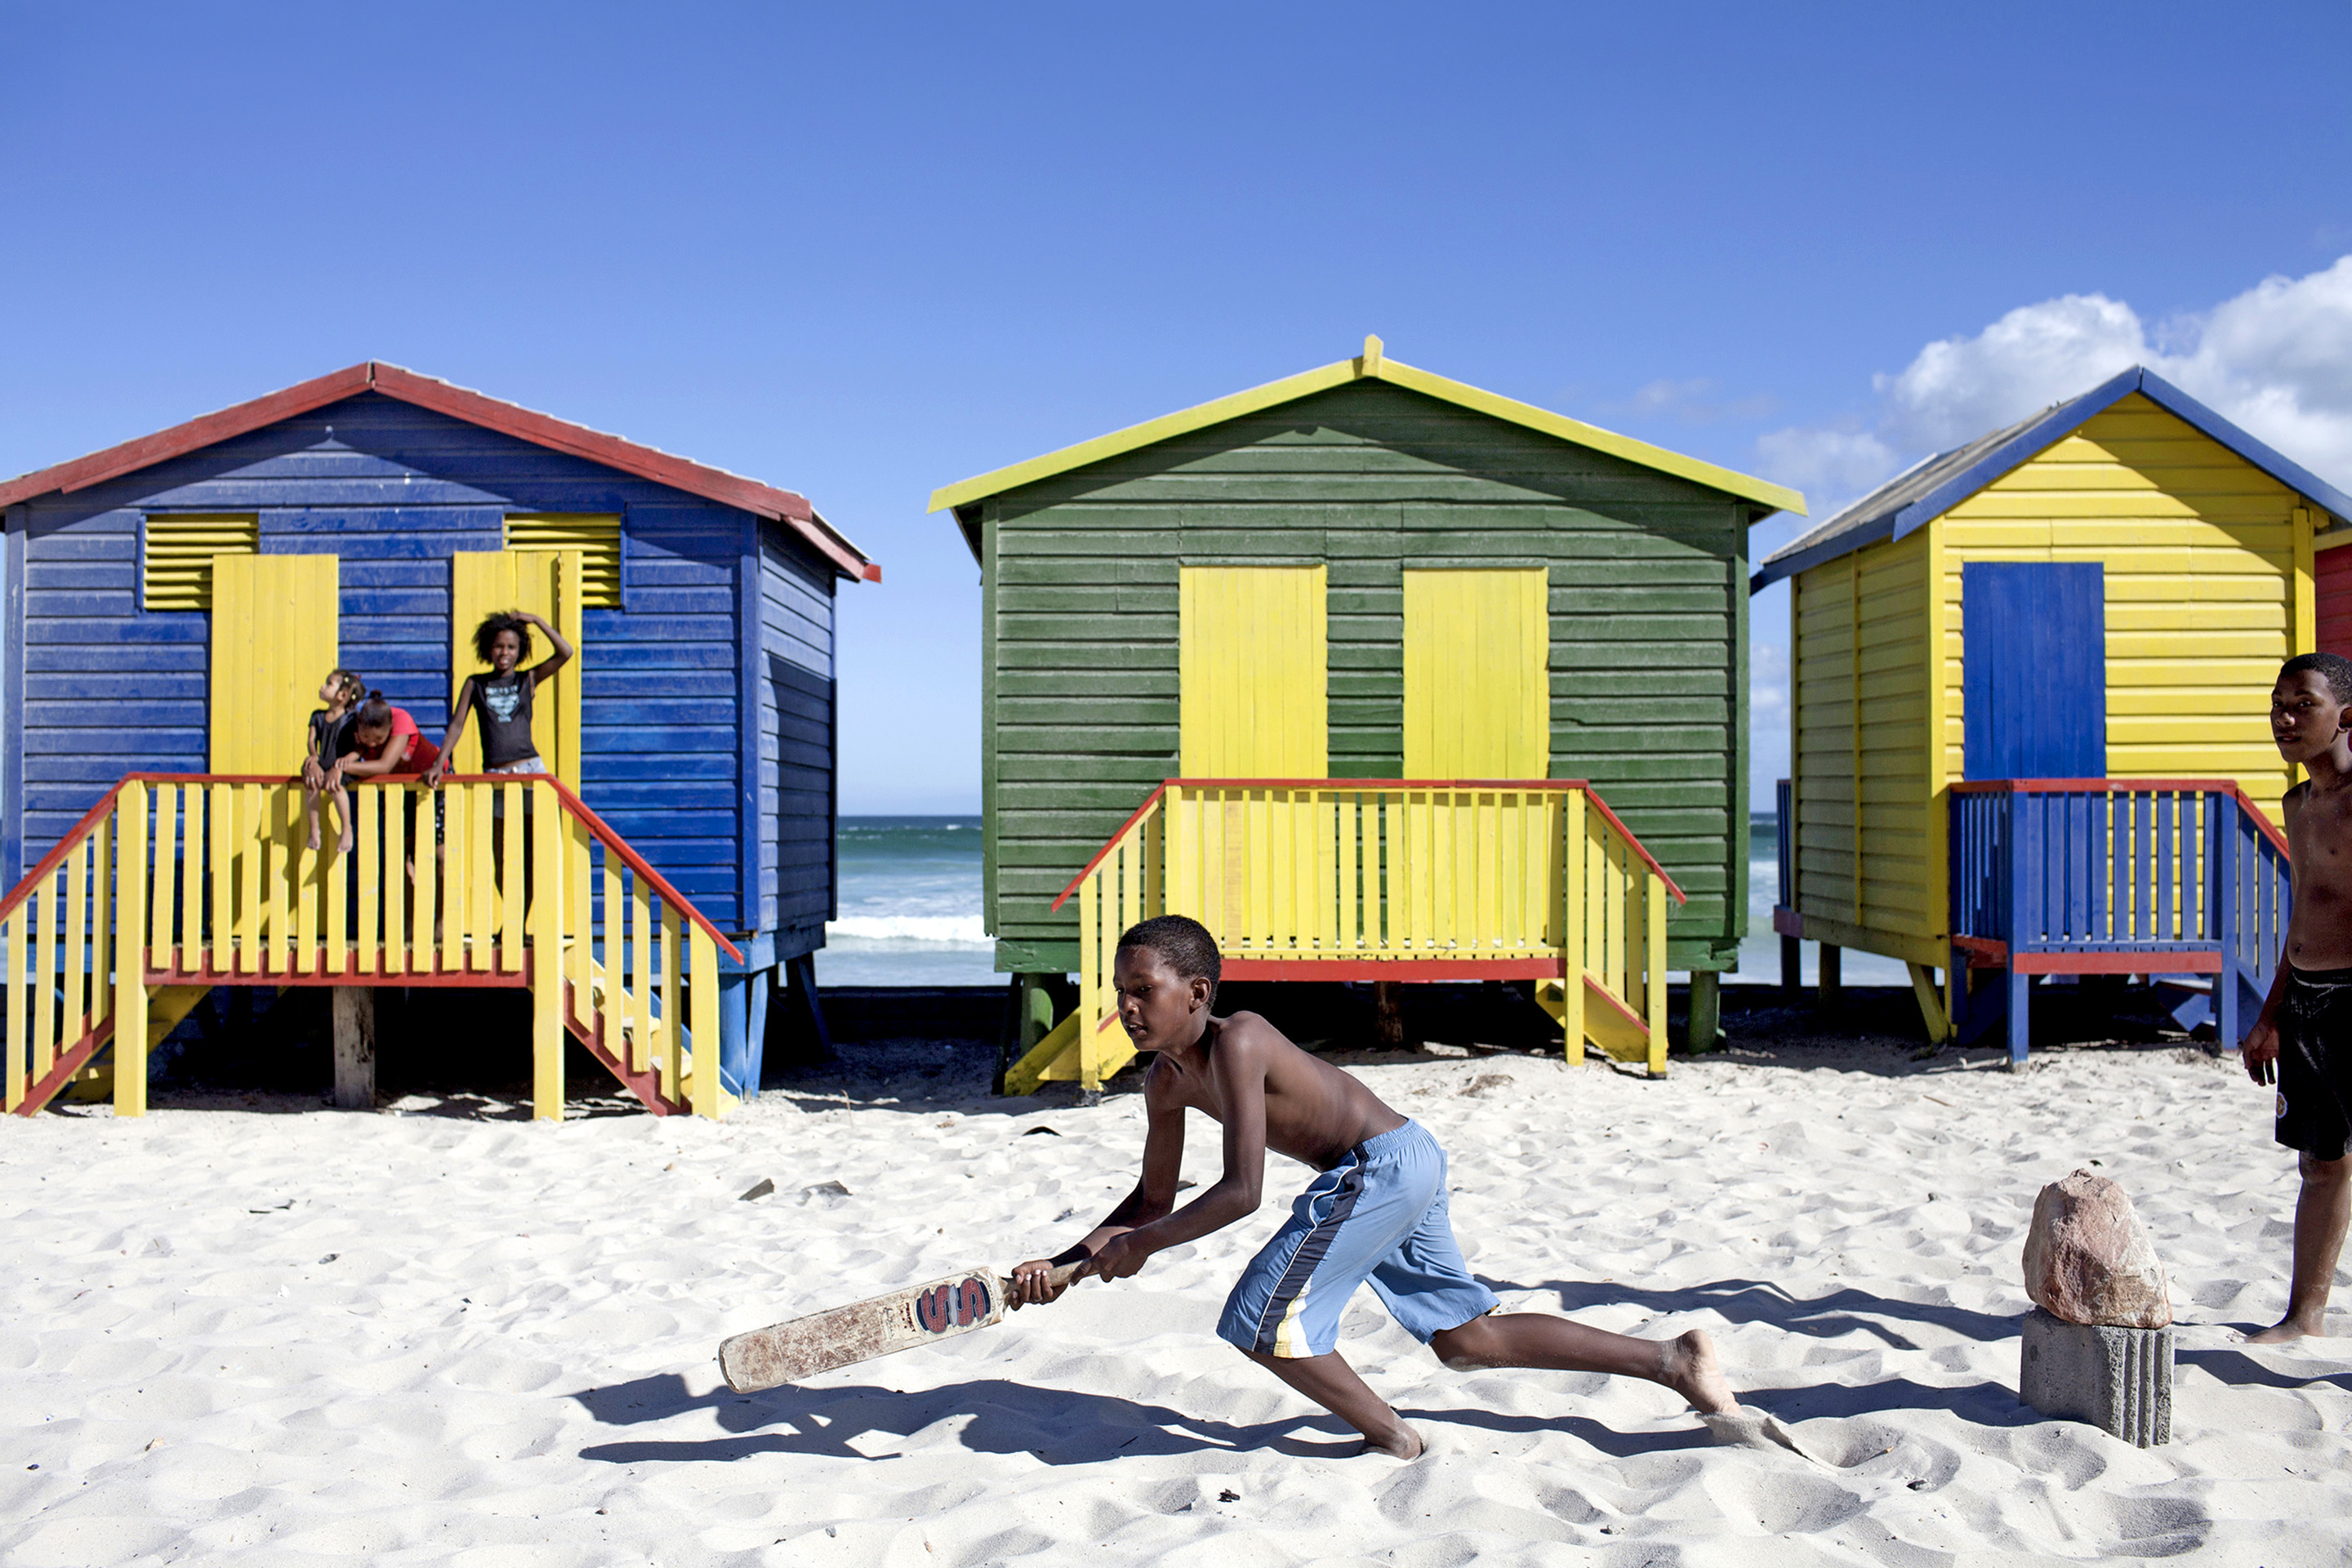 Muizenberg-cape-town-south-africa-pas-08-18